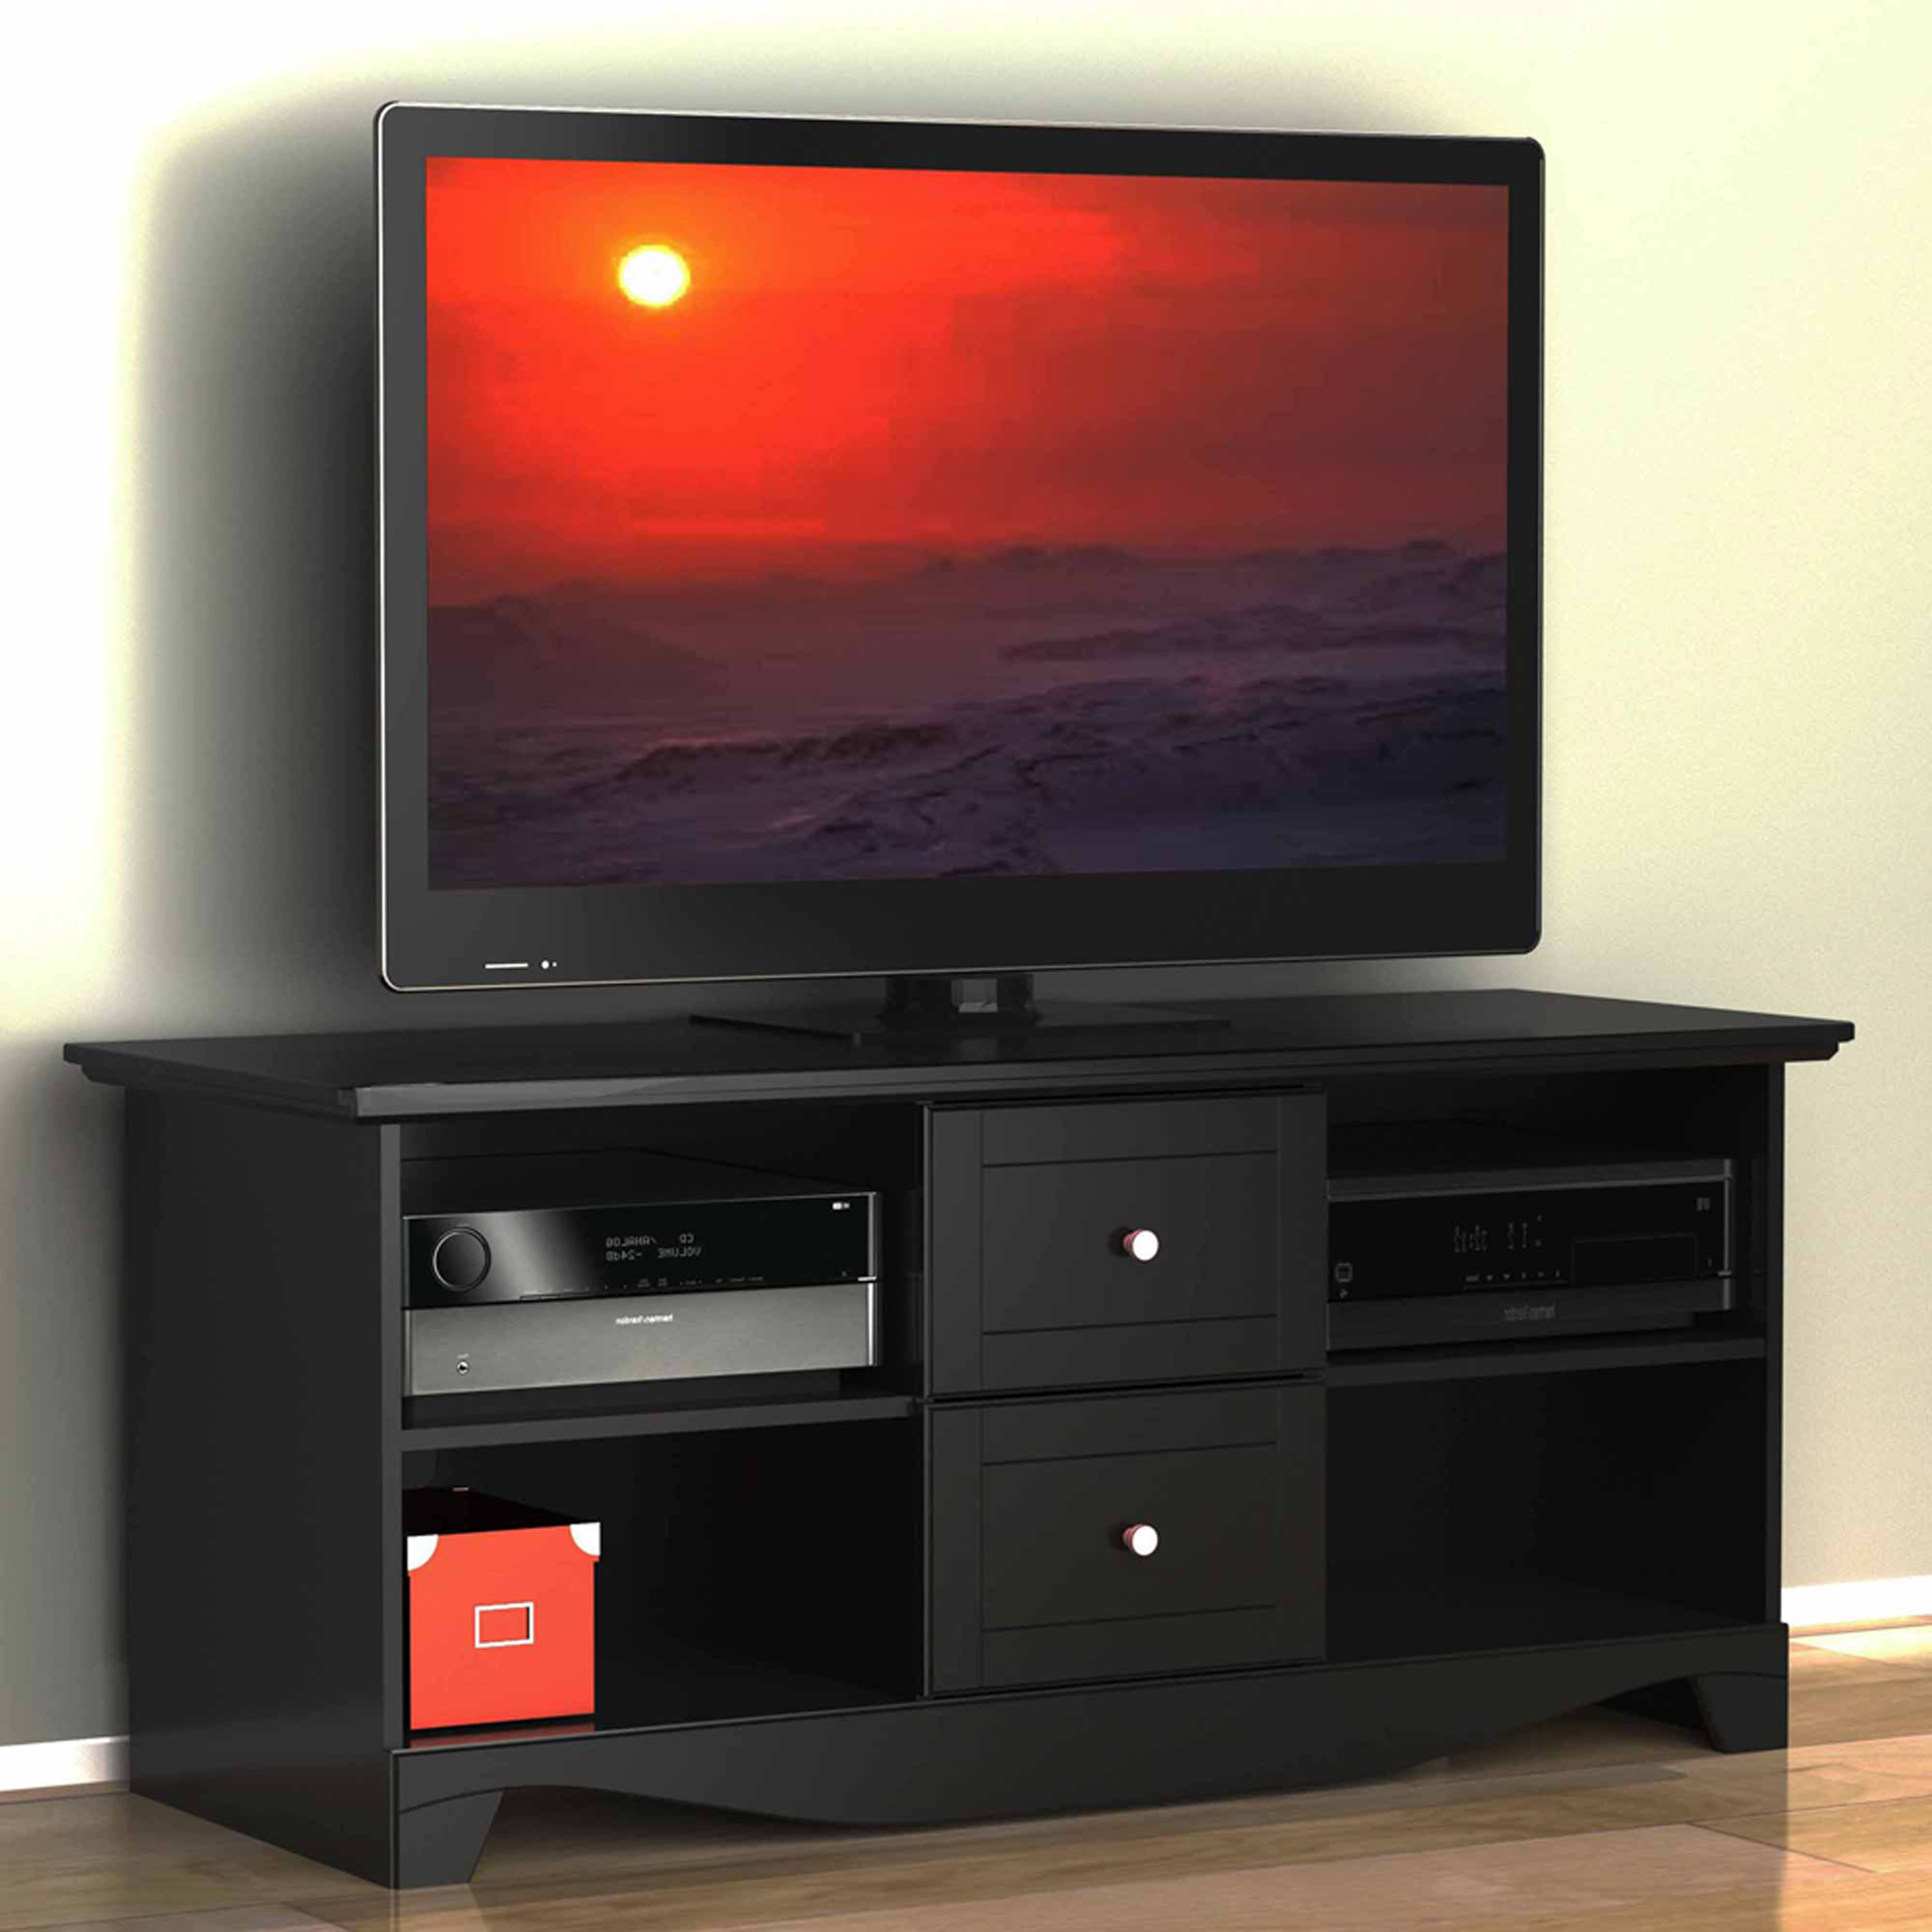 """Most Popular Lorraine Tv Stands For Tvs Up To 60"""" For Visions Black Tv Stand, For Tvs Up To 60"""" – Walmart (View 16 of 20)"""